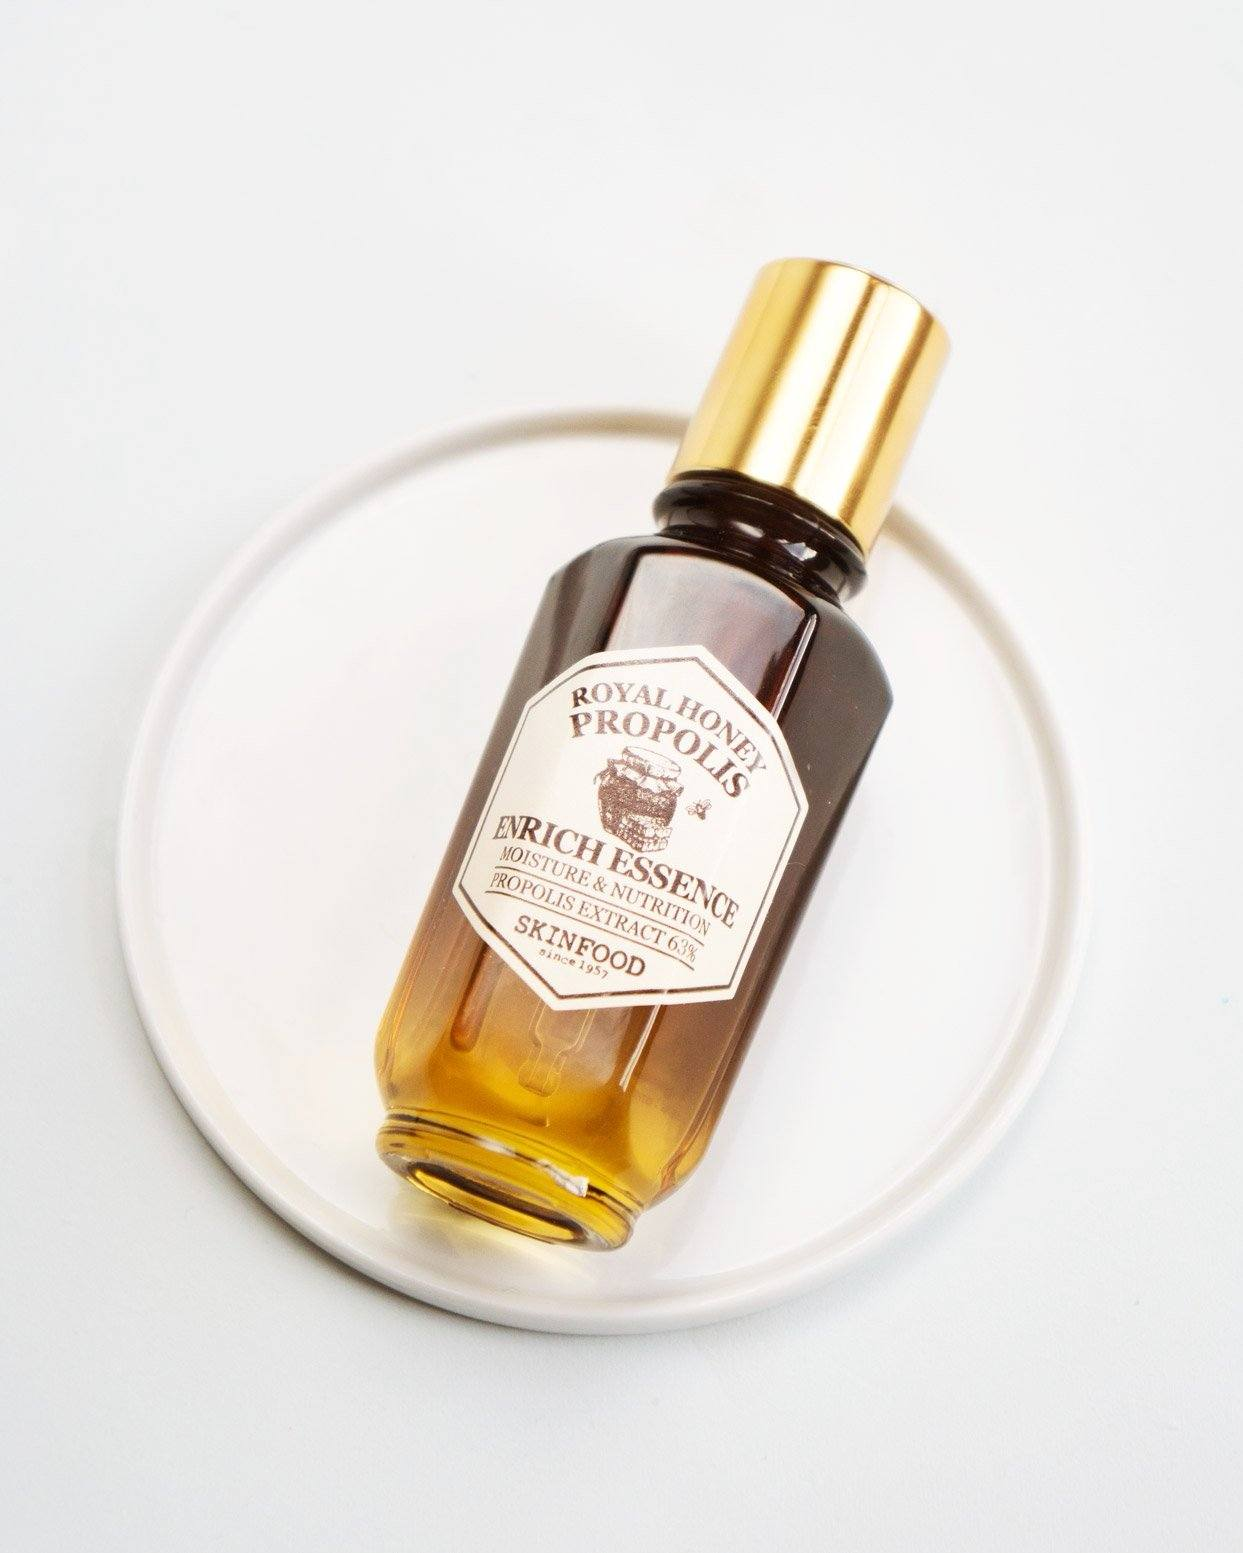 Royal Honey Propolis Enrich Essence Product